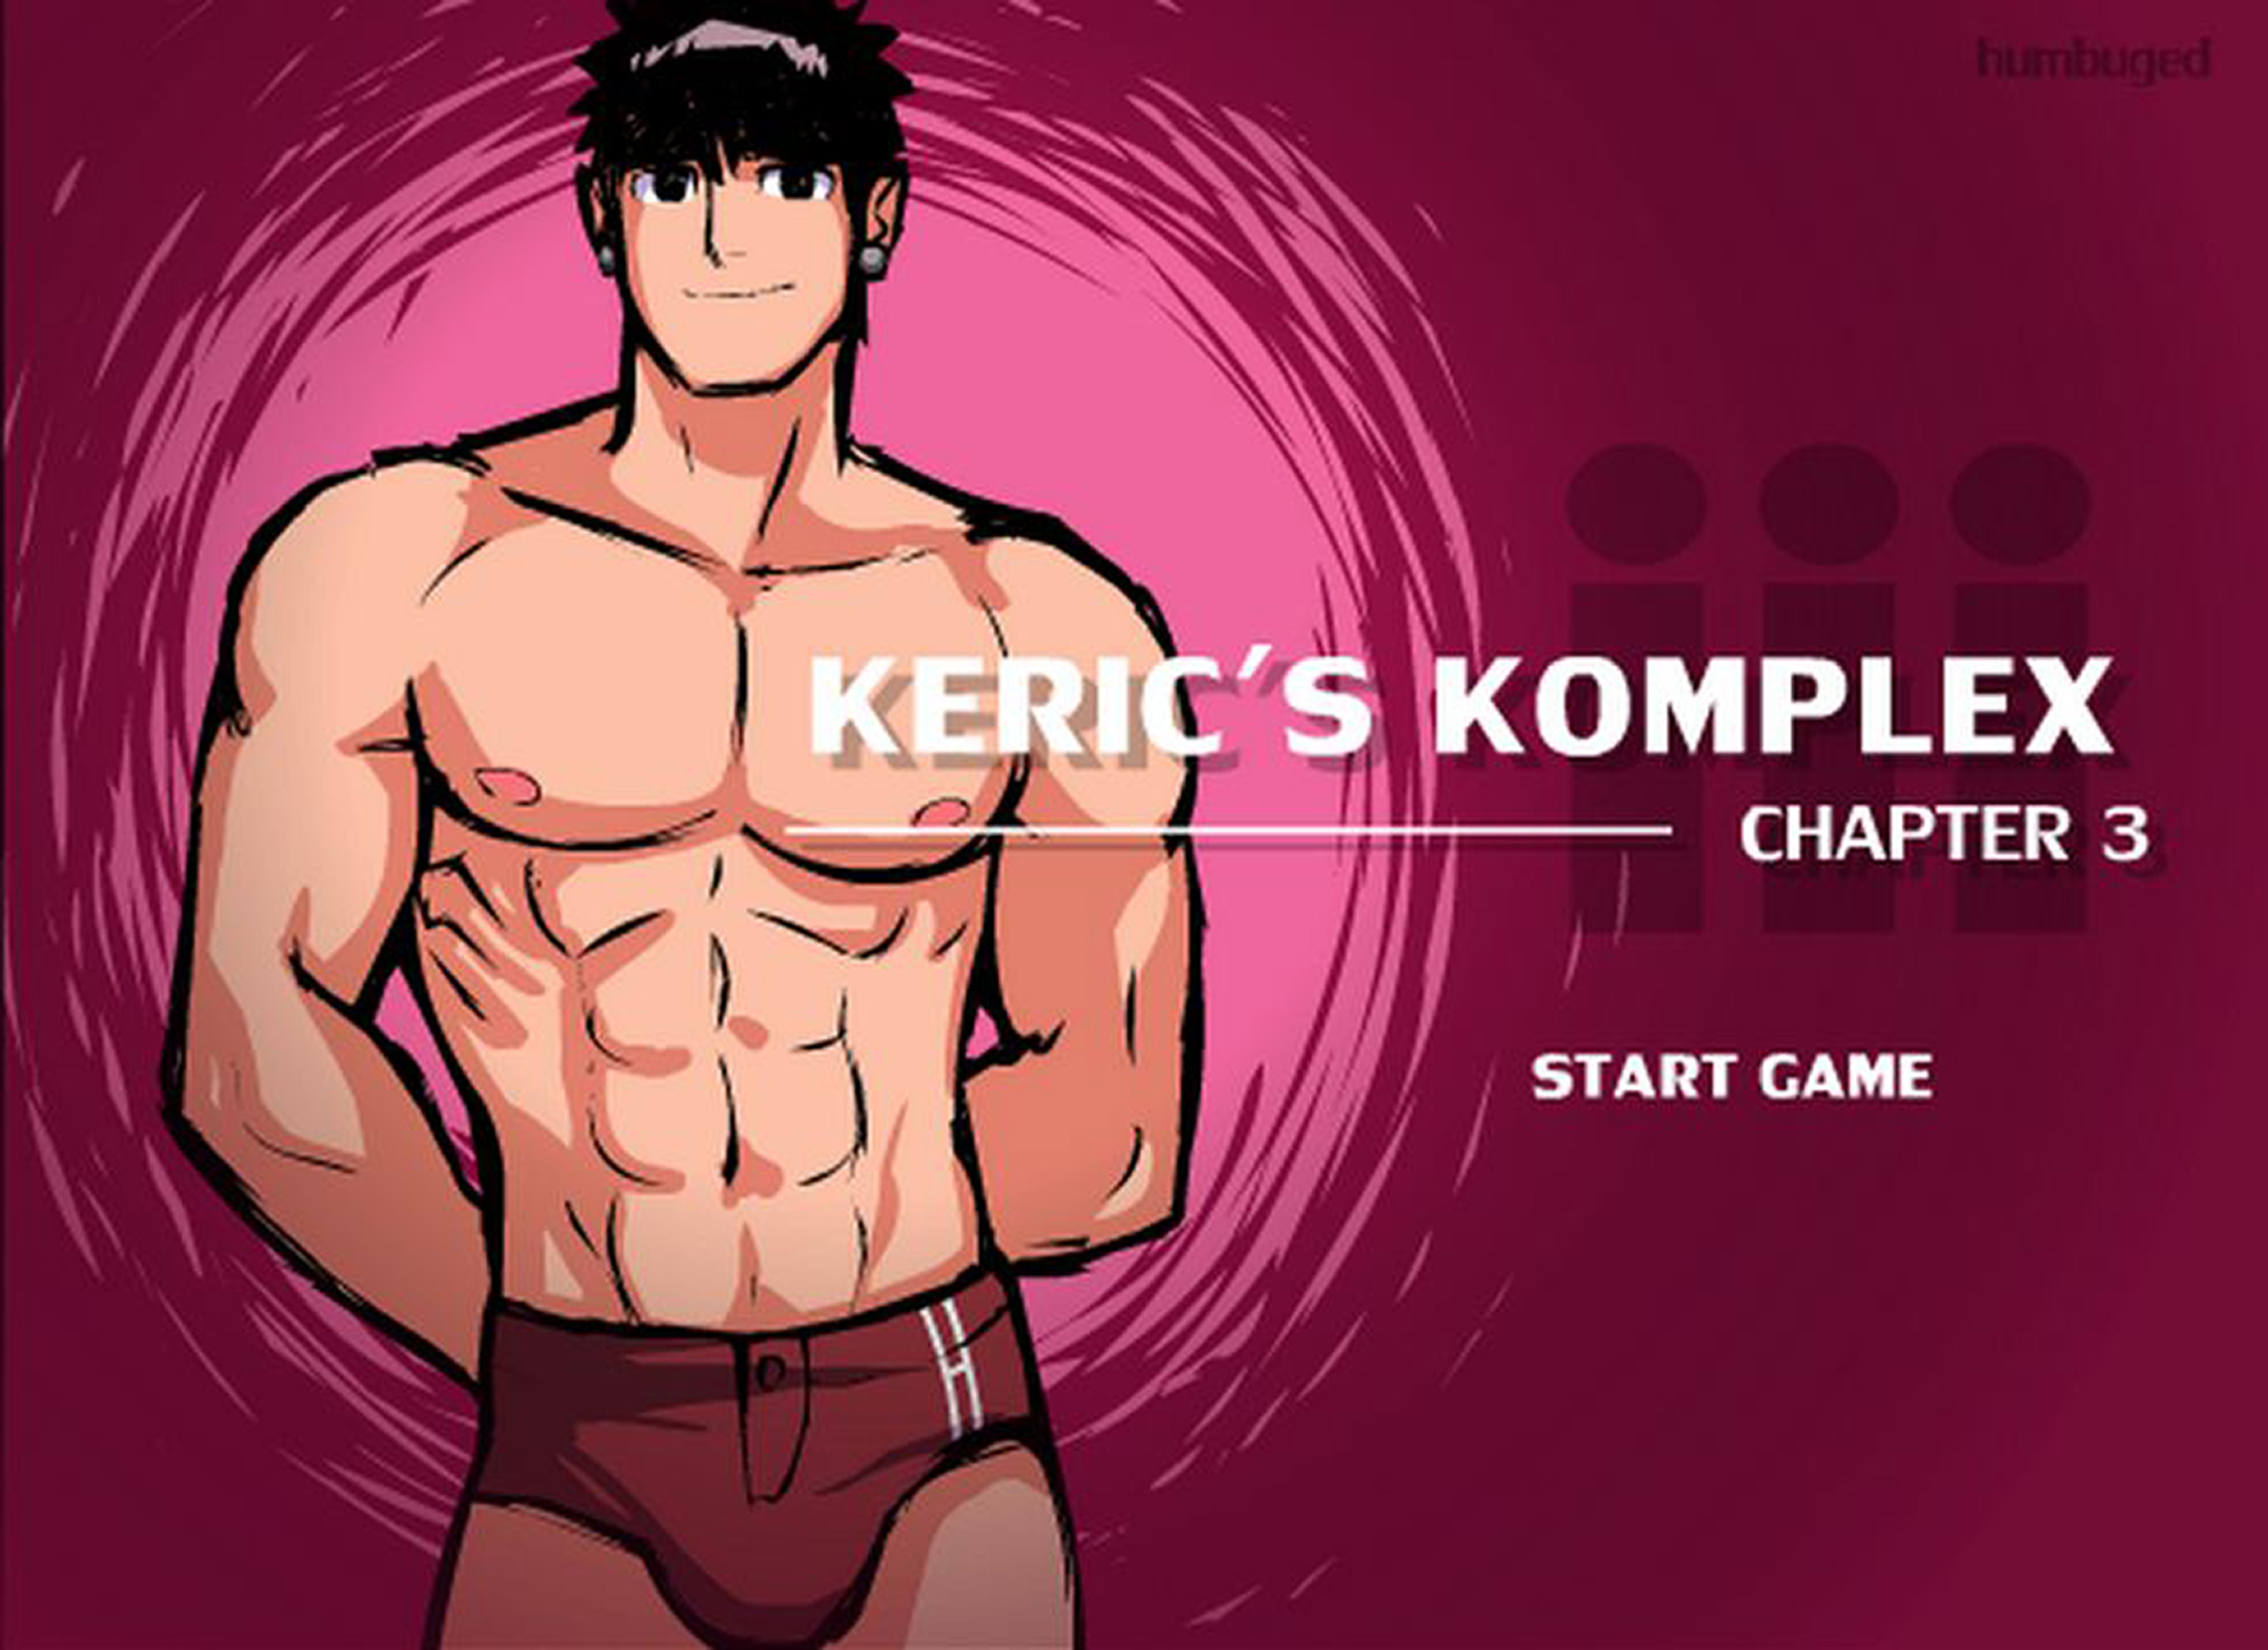 Keric's Komplex – Chapter 3